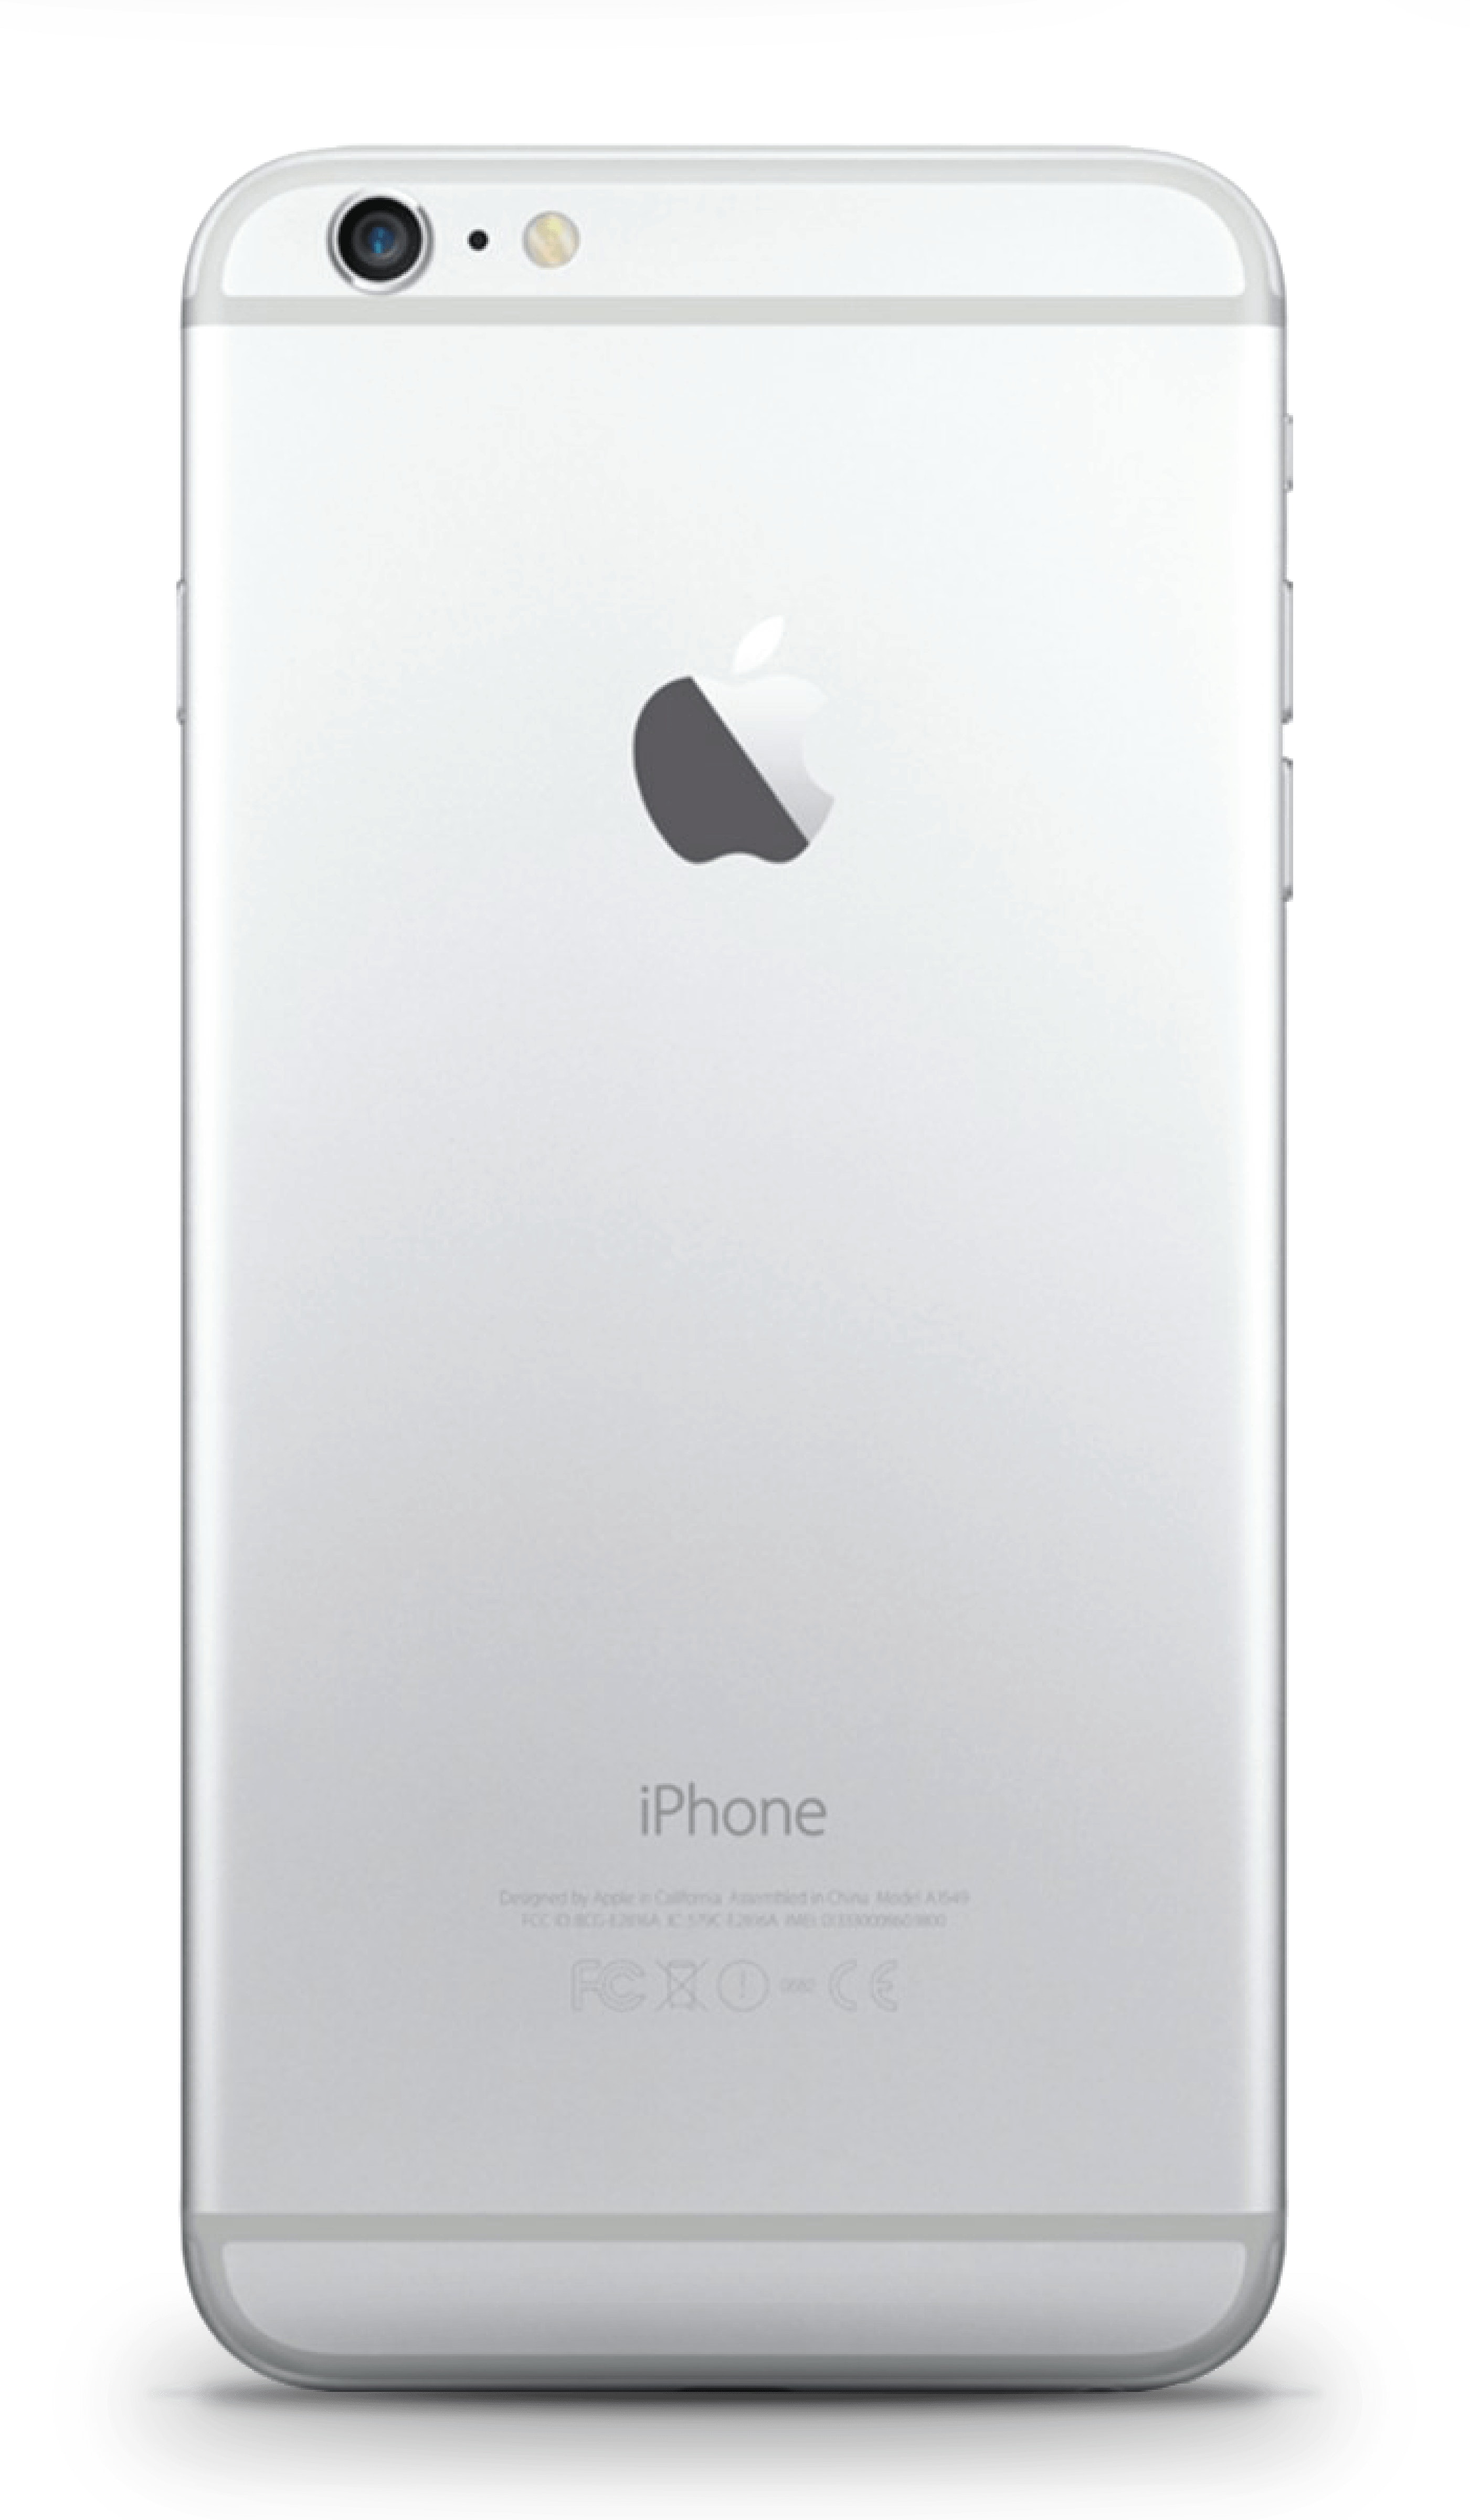 Apple iPhone 6 plus image